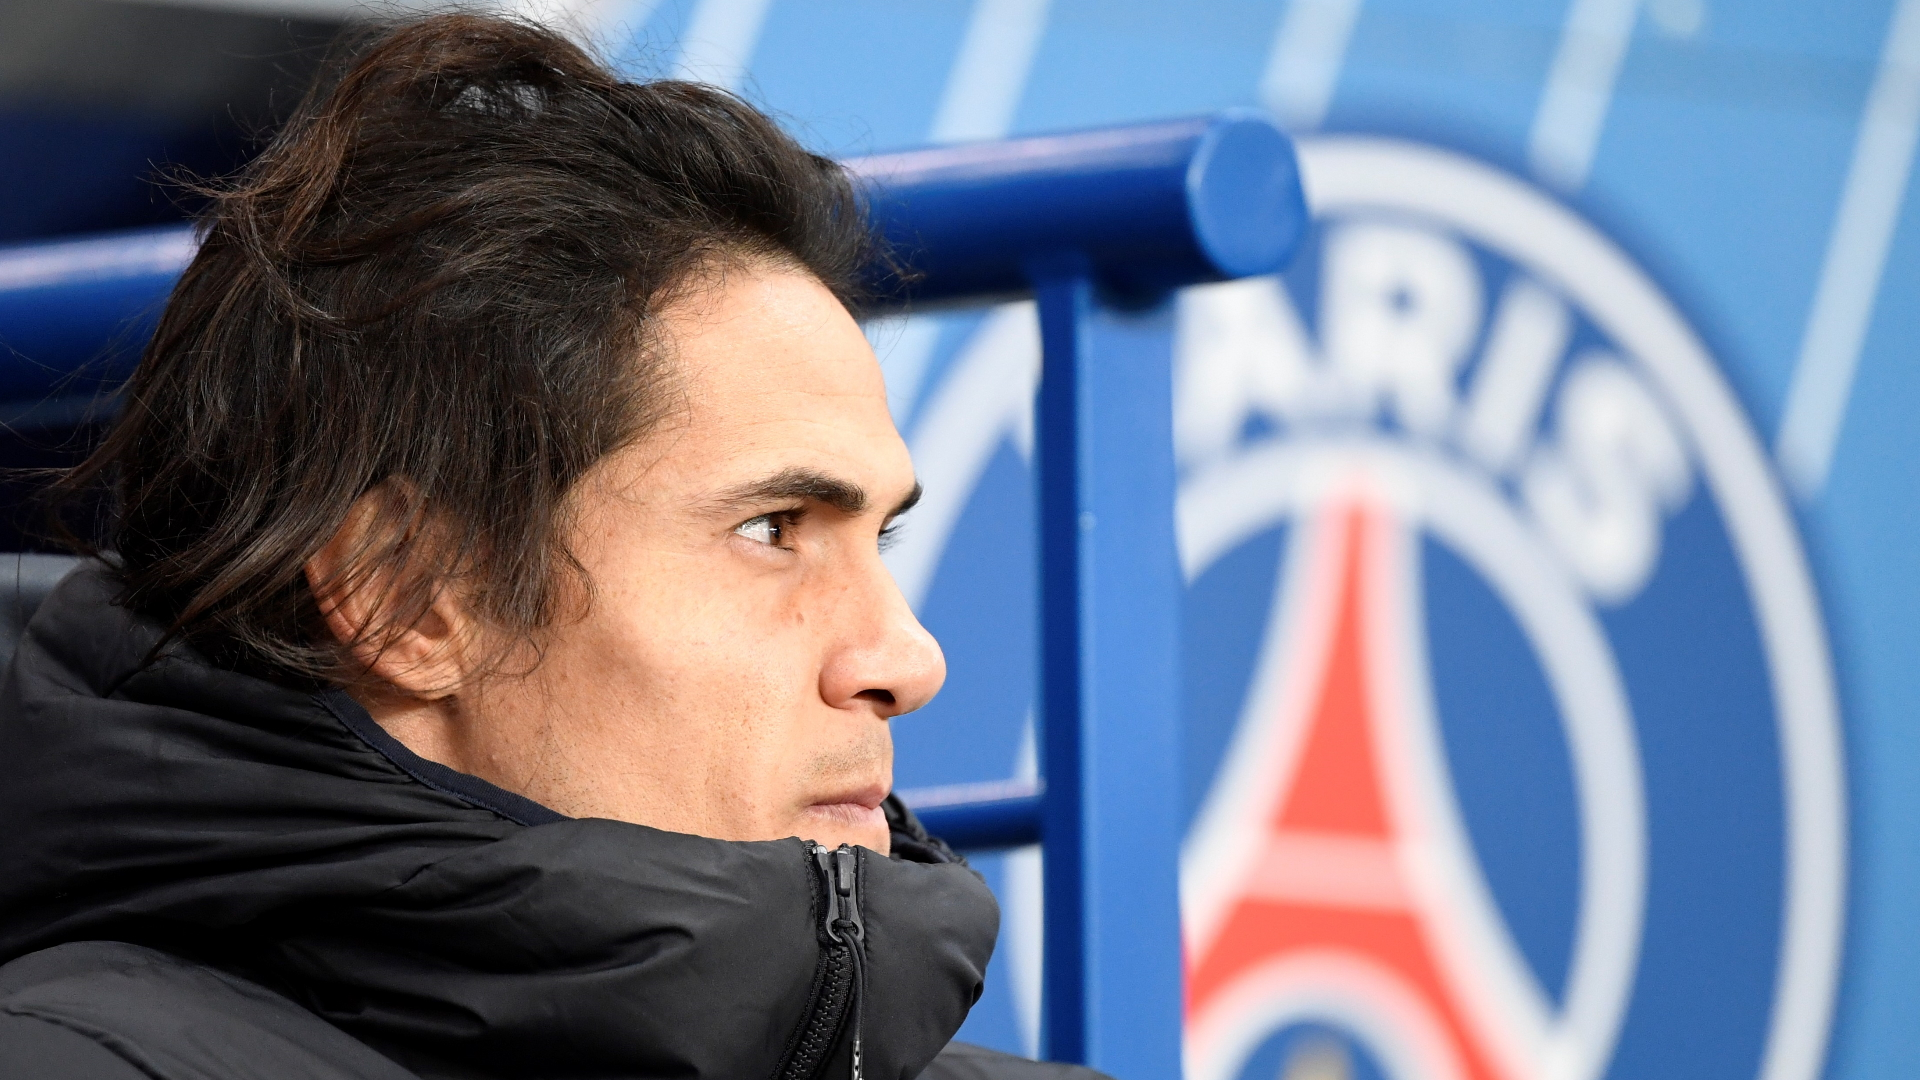 Chelsea target Cavani verbally agrees to join Atletico Madrid before winter transfer deadline